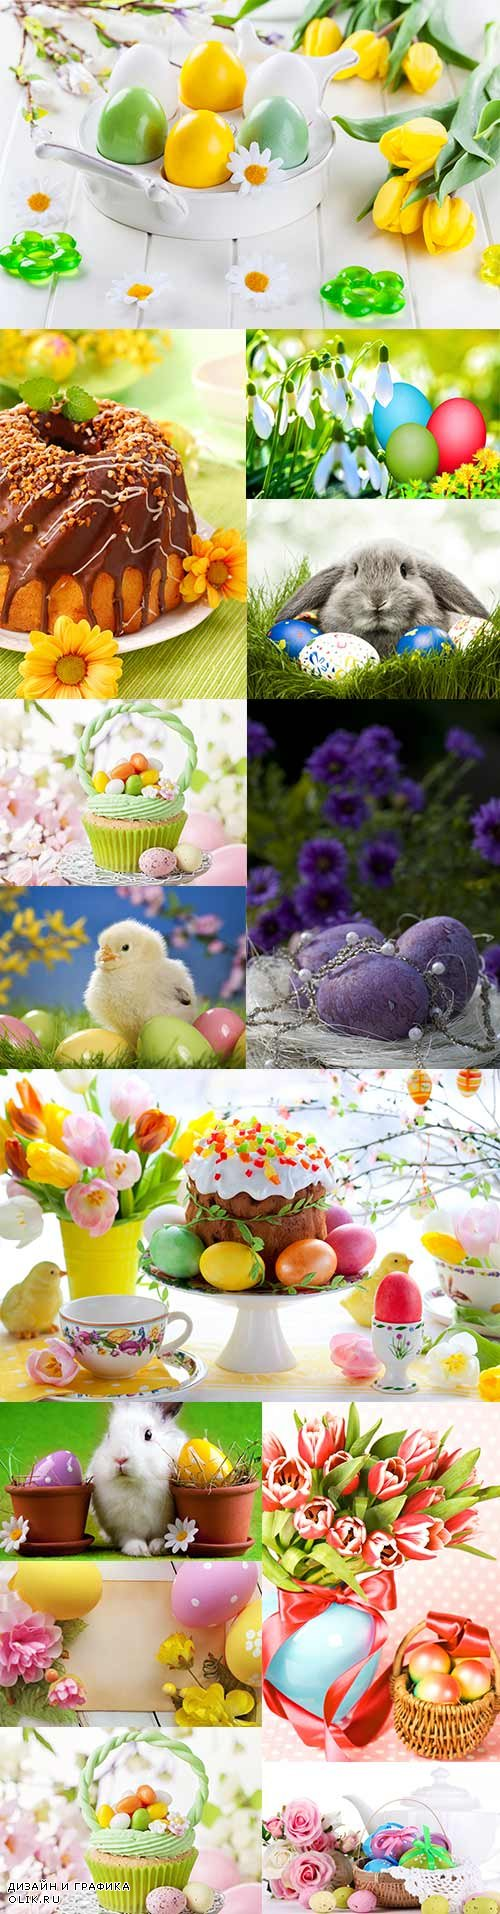 Happy Easter -2